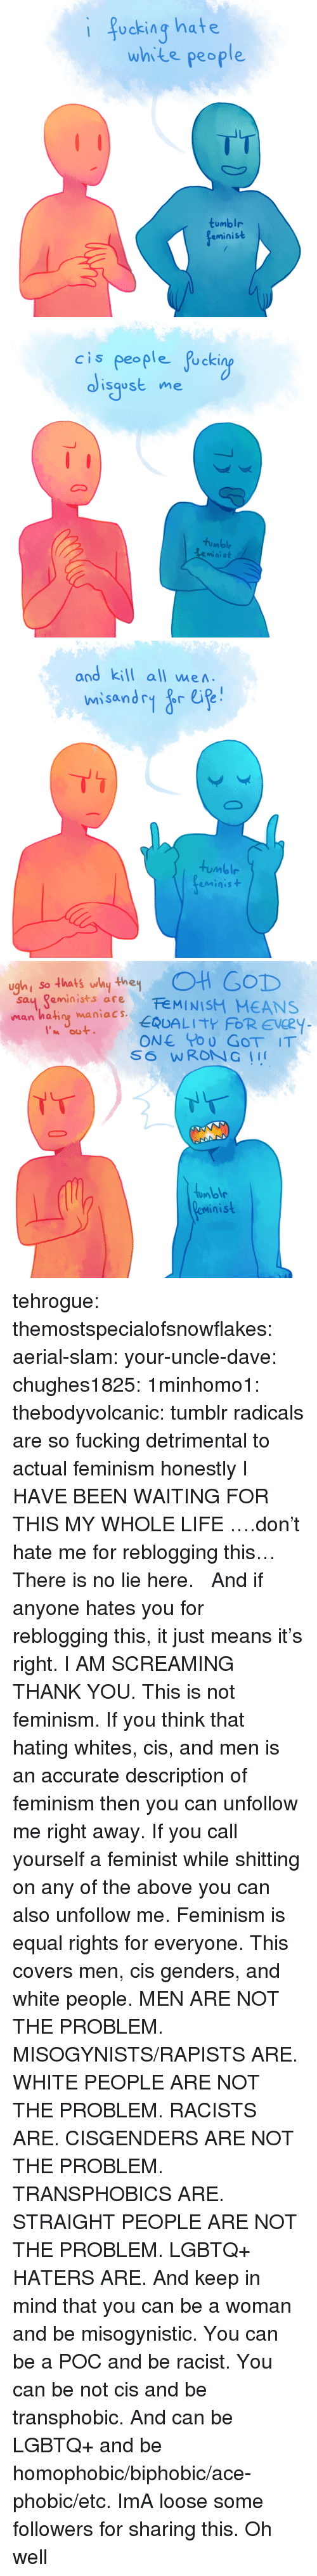 Feminism, Fucking, and God: i focking hate  white people  tumblr  eminist   cis people fucki  isgost me  tumble  minist   and kill all wen  tumblr  eminis+   so thats uby theyOH GOD  sau Reminists are FeMINISM MEANS  man hating waniacs. EQUALITY FOR EVERY  ONE Po O GoT IT  tunlolr  minist tehrogue:  themostspecialofsnowflakes:  aerial-slam:  your-uncle-dave:  chughes1825:  1minhomo1:  thebodyvolcanic:  tumblr radicals are so fucking detrimental to actual feminism honestly  I HAVE BEEN WAITING FOR THIS MY WHOLE LIFE  ….don't hate me for reblogging this…  There is no lie here.   And if anyone hates you for reblogging this, it just means it's right.  I AM SCREAMING THANK YOU.  This is not feminism. If you think that hating whites, cis, and men is an accurate description of feminism then you can unfollow me right away. If you call yourself a feminist while shitting on any of the above you can also unfollow me. Feminism is equal rights for everyone. This covers men, cis genders, and white people.  MEN ARE NOT THE PROBLEM. MISOGYNISTS/RAPISTS ARE.  WHITE PEOPLE ARE NOT THE PROBLEM. RACISTS ARE. CISGENDERS ARE NOT THE PROBLEM. TRANSPHOBICS ARE. STRAIGHT PEOPLE ARE NOT THE PROBLEM. LGBTQ+ HATERS ARE. And keep in mind that you can be a woman and be misogynistic. You can be a POC and be racist. You can be not cis and be transphobic. And can be LGBTQ+ and be homophobic/biphobic/ace-phobic/etc.   ImA loose some followers for sharing this. Oh well